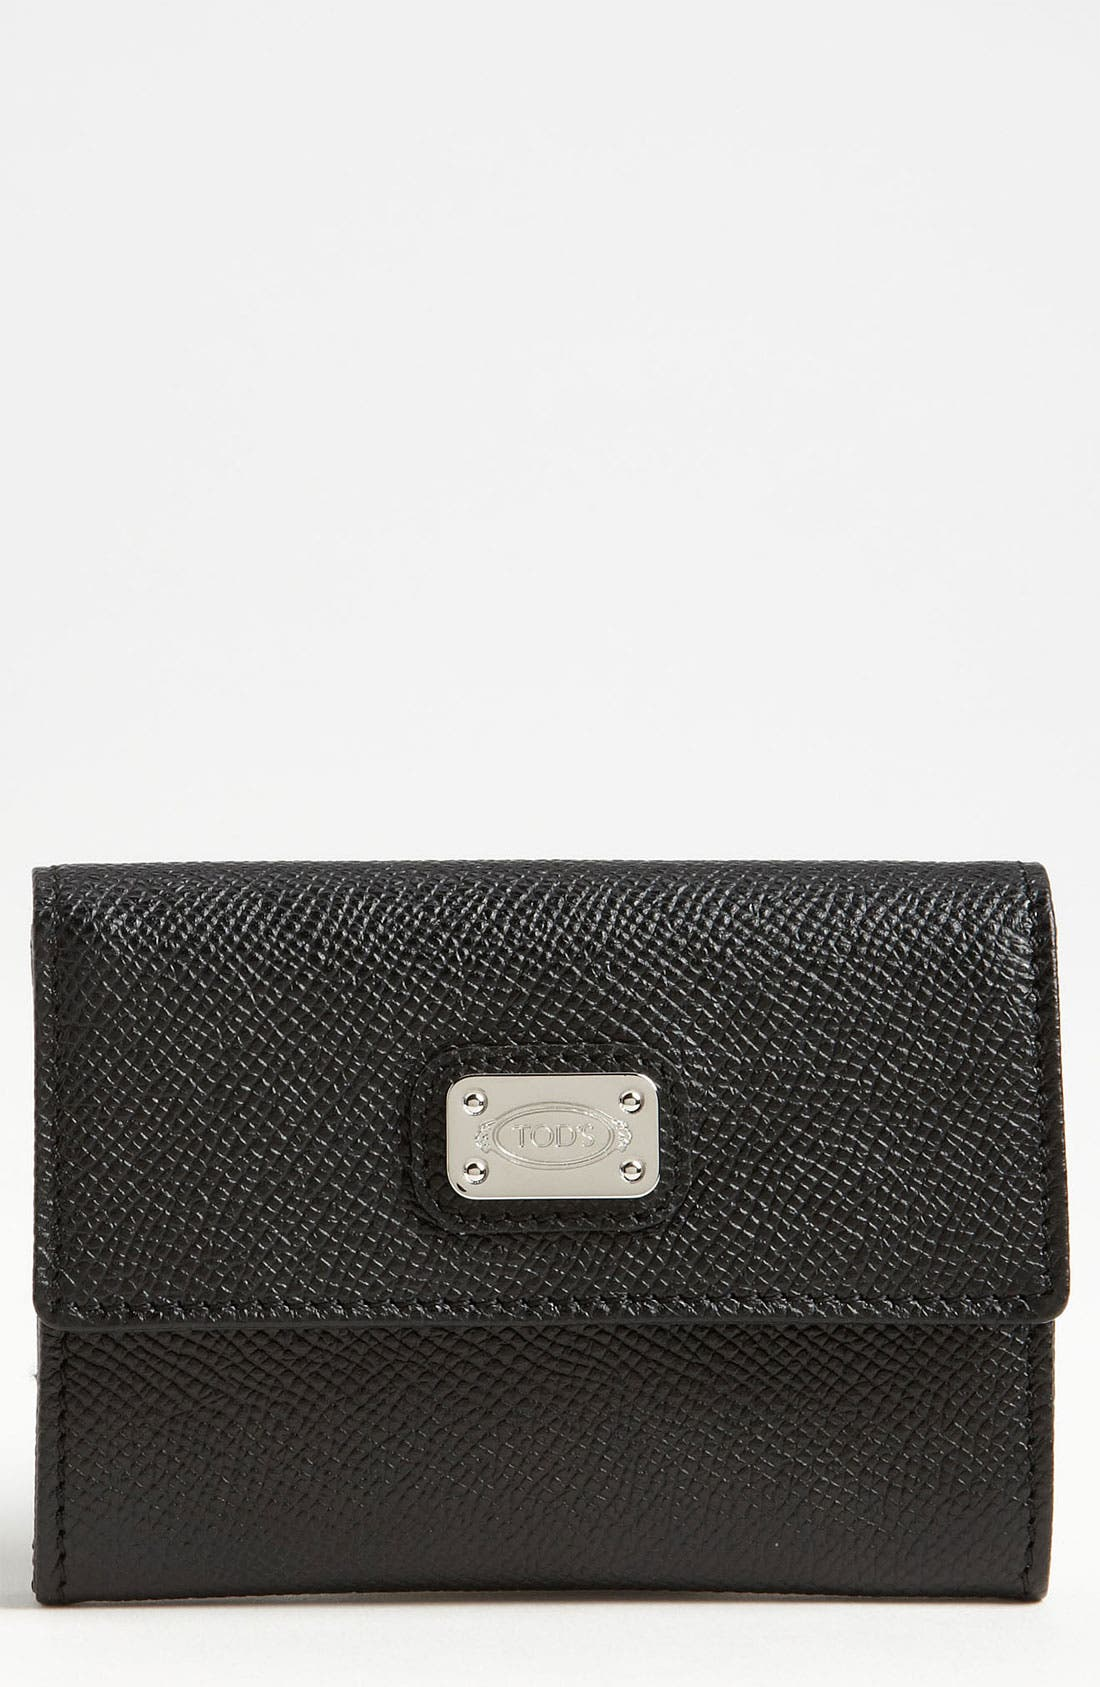 Main Image - Tod's 'D Styling - New Mini' Leather Wallet